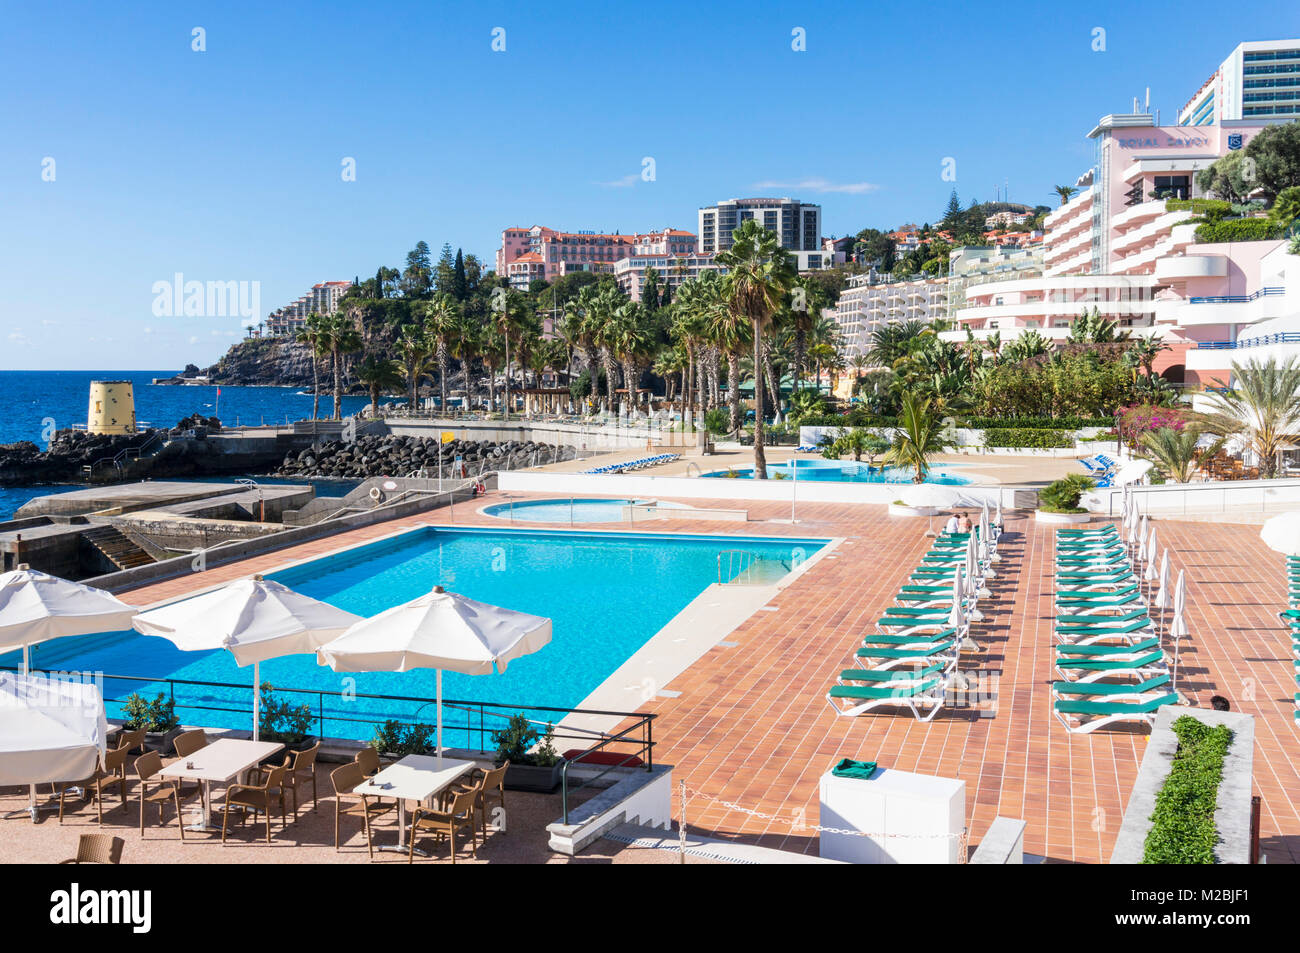 MADEIRA PORTUGAL MADEIRA Hotel pool and sunbathing area of the Royal Savoy hotel Funchal Madeira Portugal eu europe - Stock Image